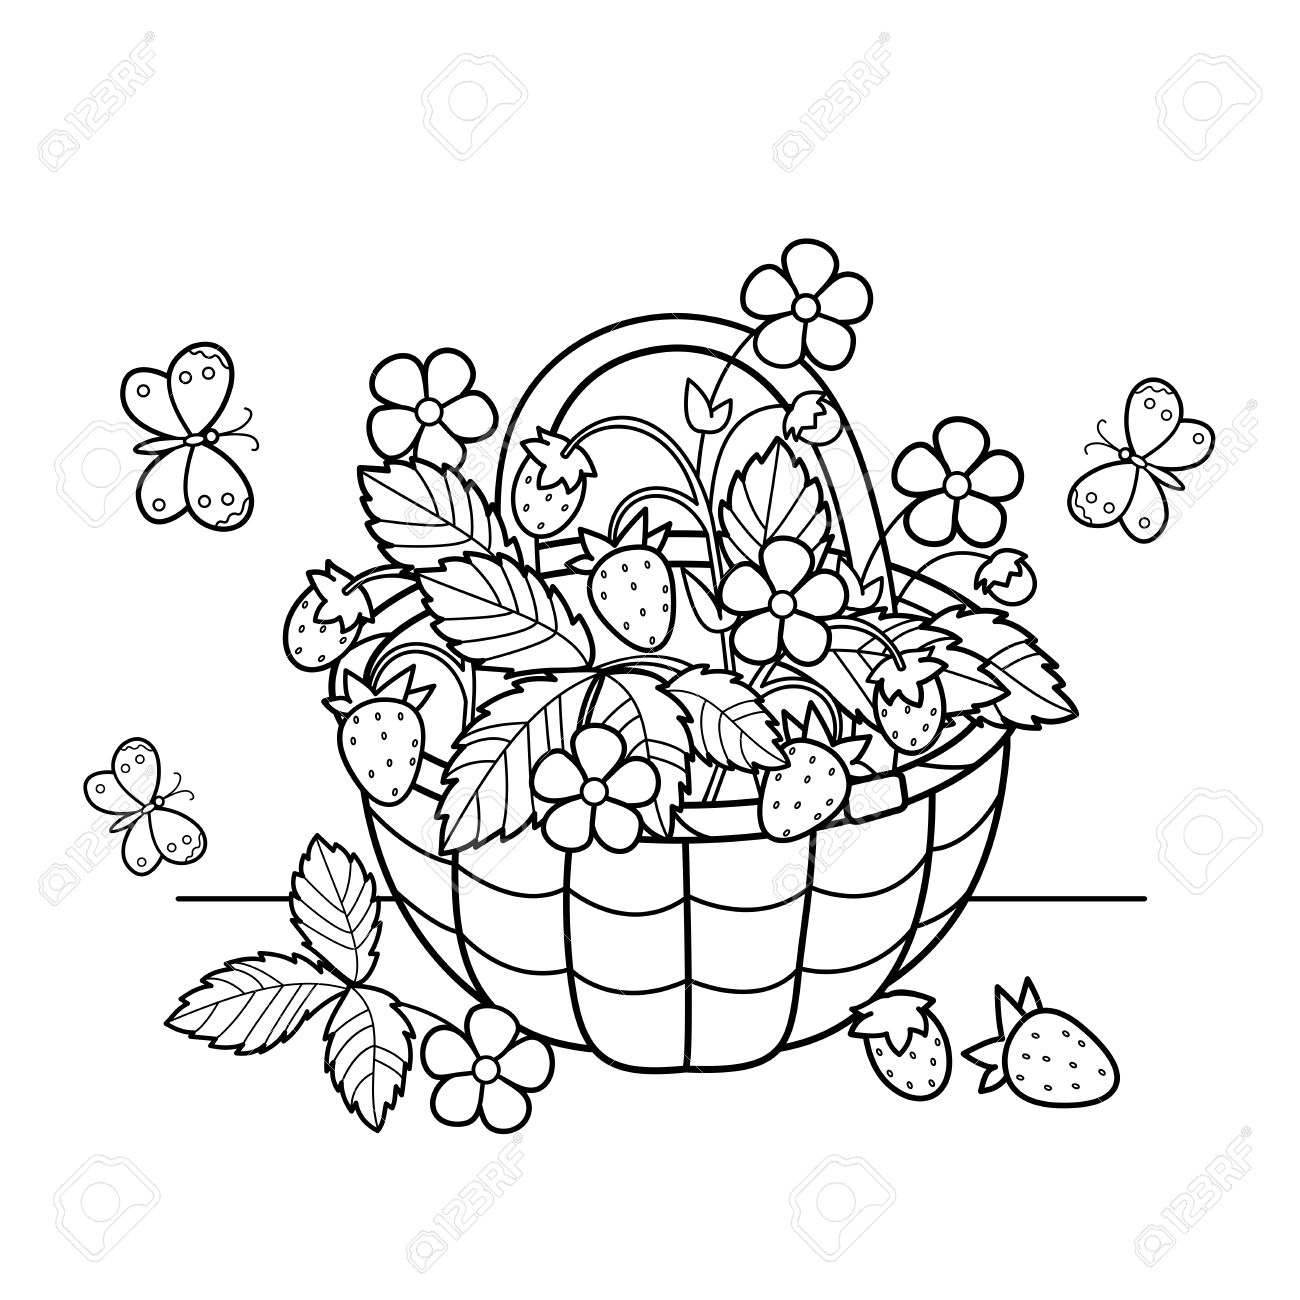 Coloring Page Outline Of Cartoon Basket Of Berries. Garden ...